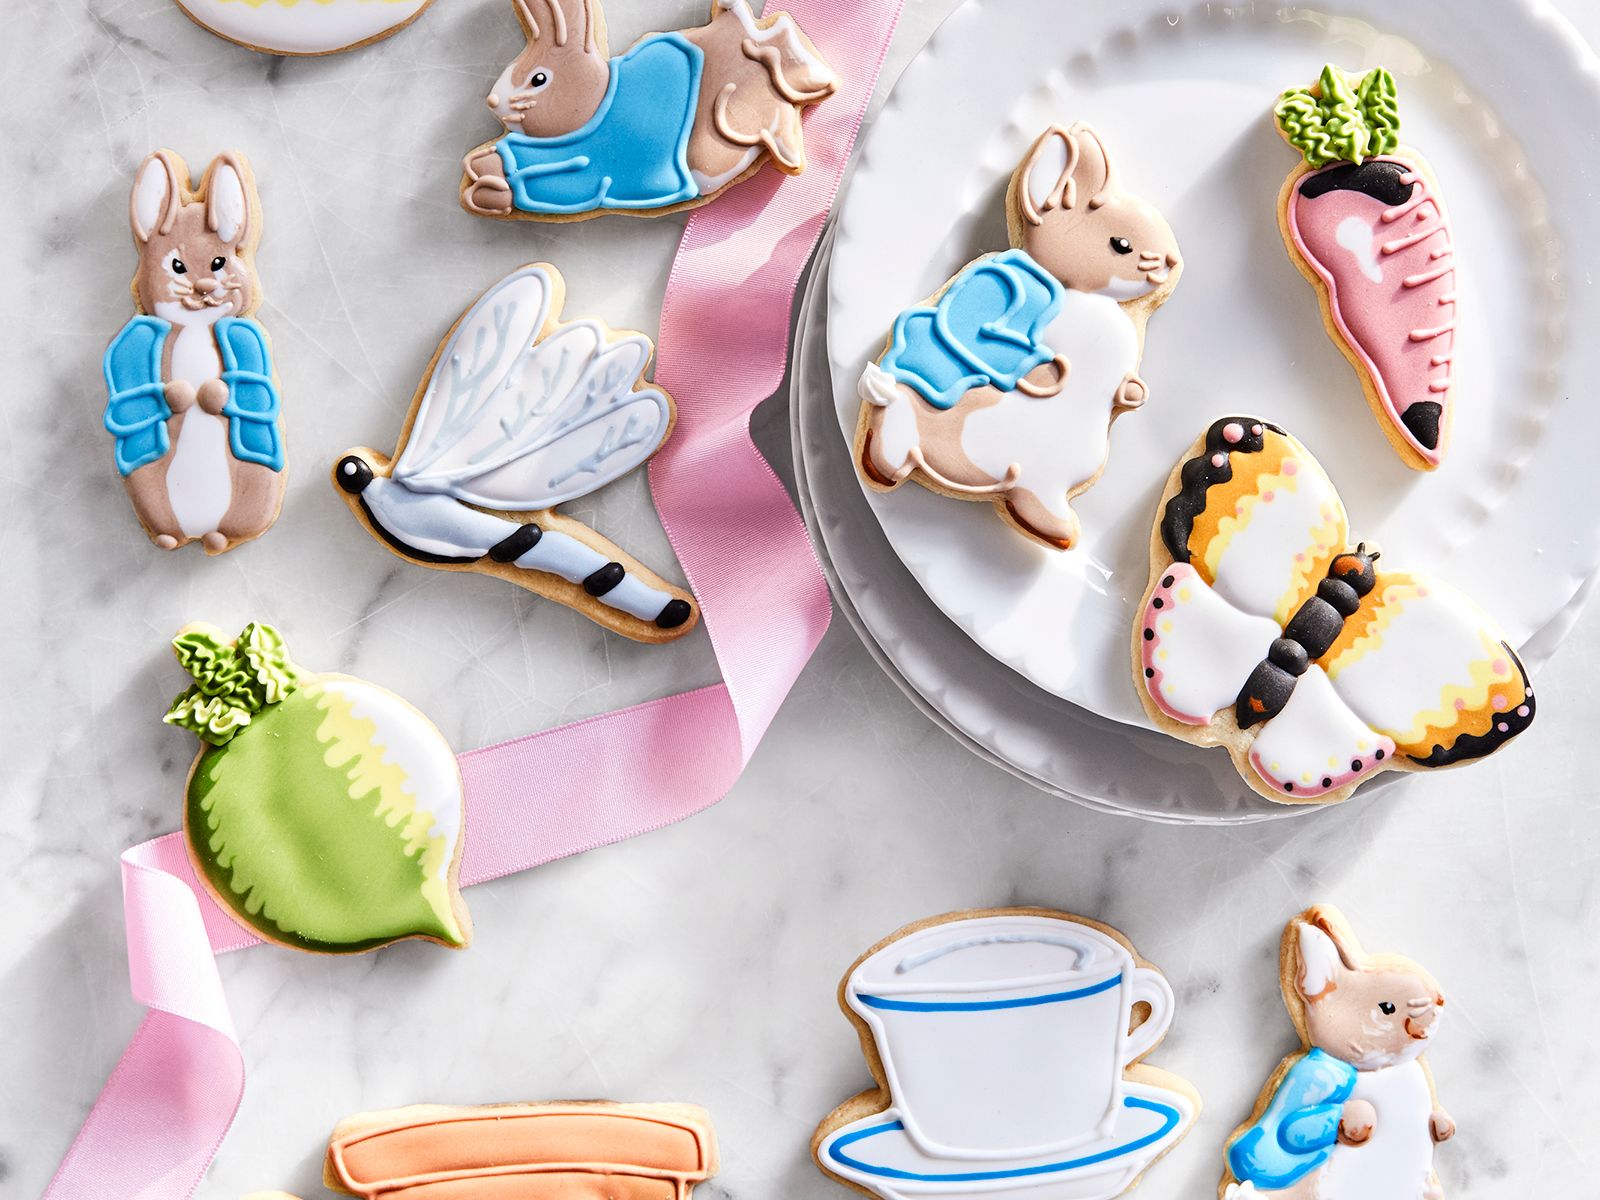 Williams Sonoma's Peter Rabbit Collection Will Delight Your Inner Child